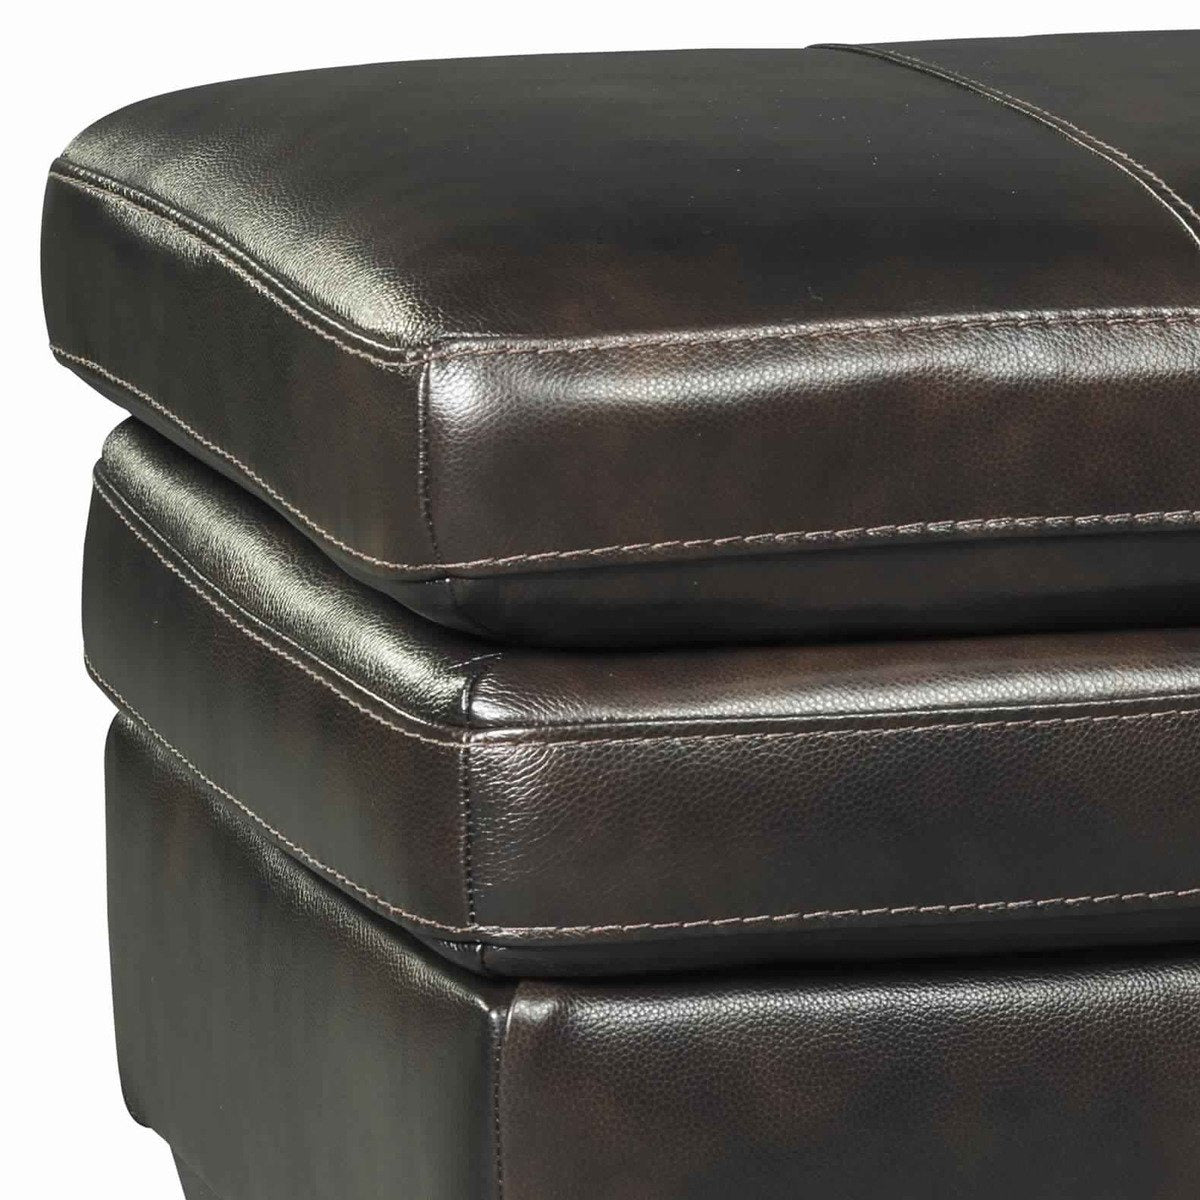 Ottomans - Leatherette Wooden Frame Ottoman With Block Legs,